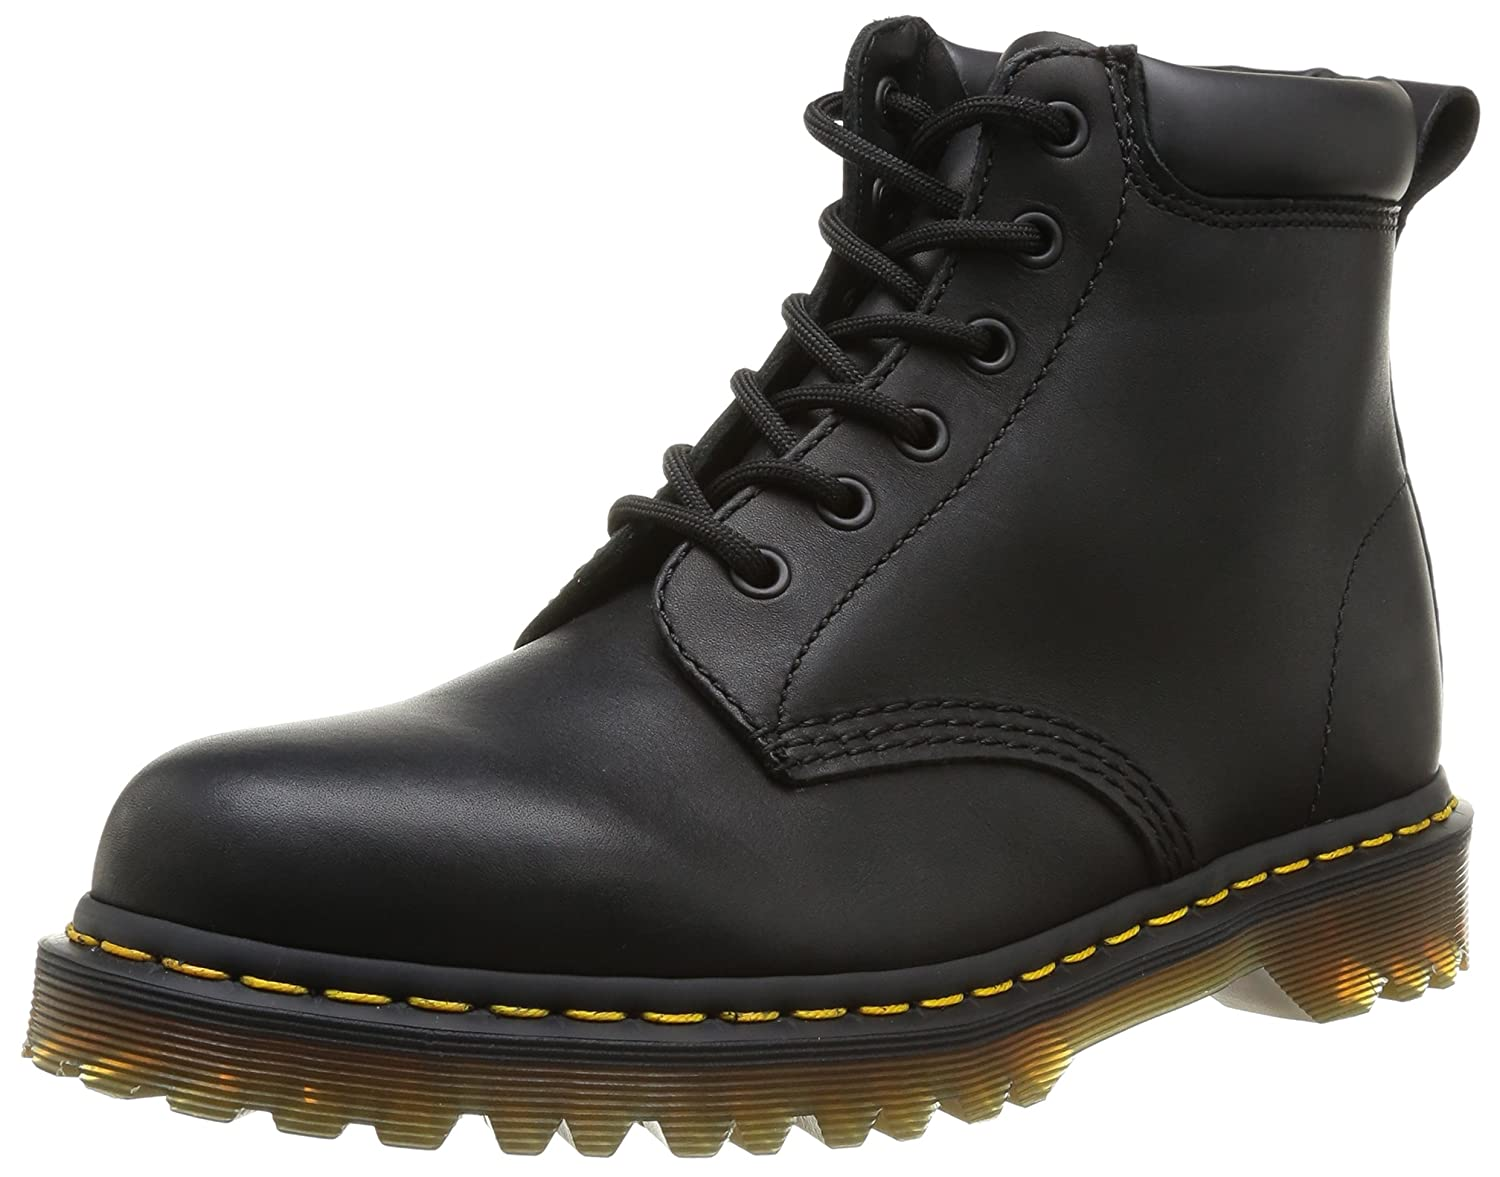 Dr. Martens Men's 939 Ben Chukka Boot B000X1GG4U 12 UK/13 M US|Black